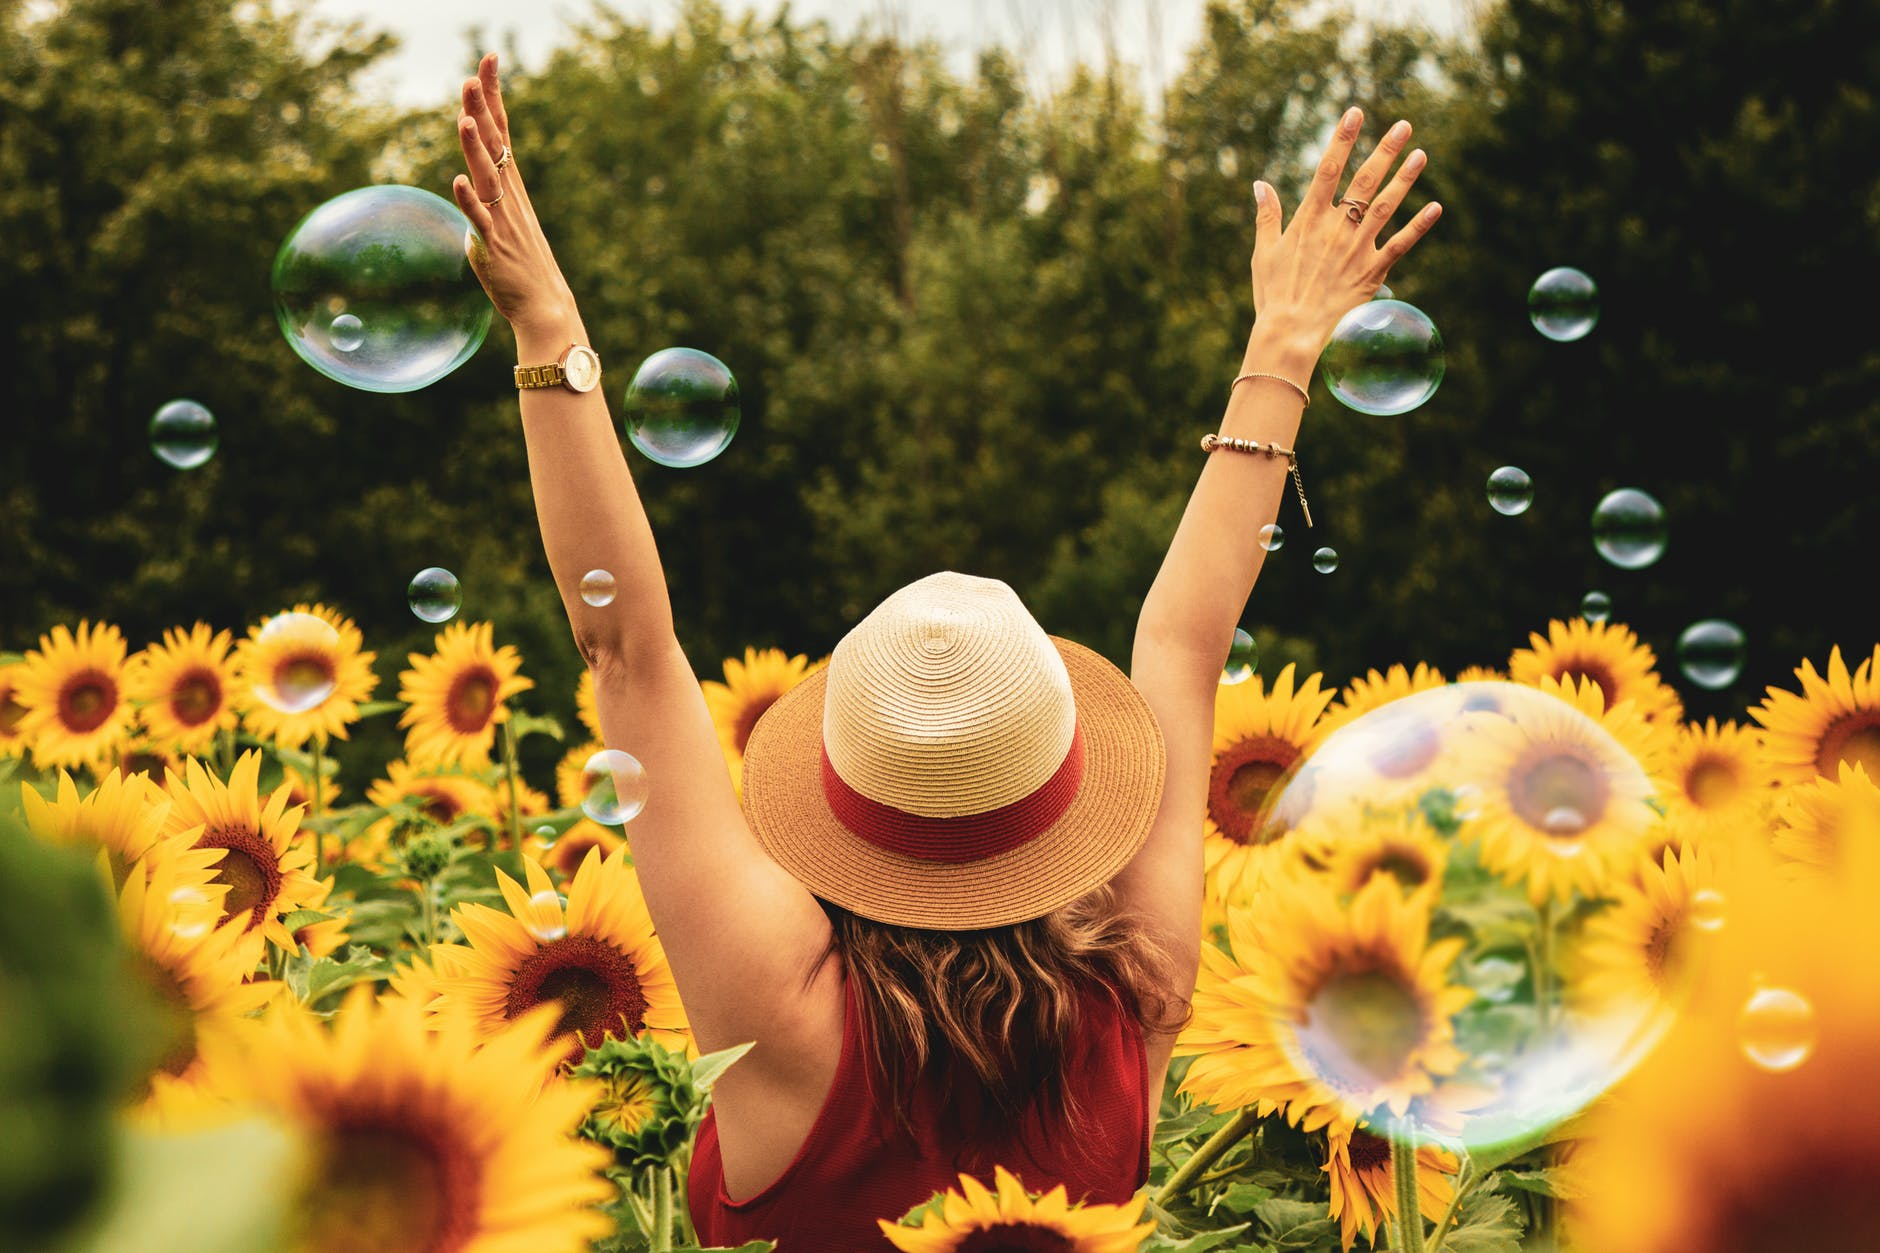 4 simple things you can do to feel happier that are backed by science